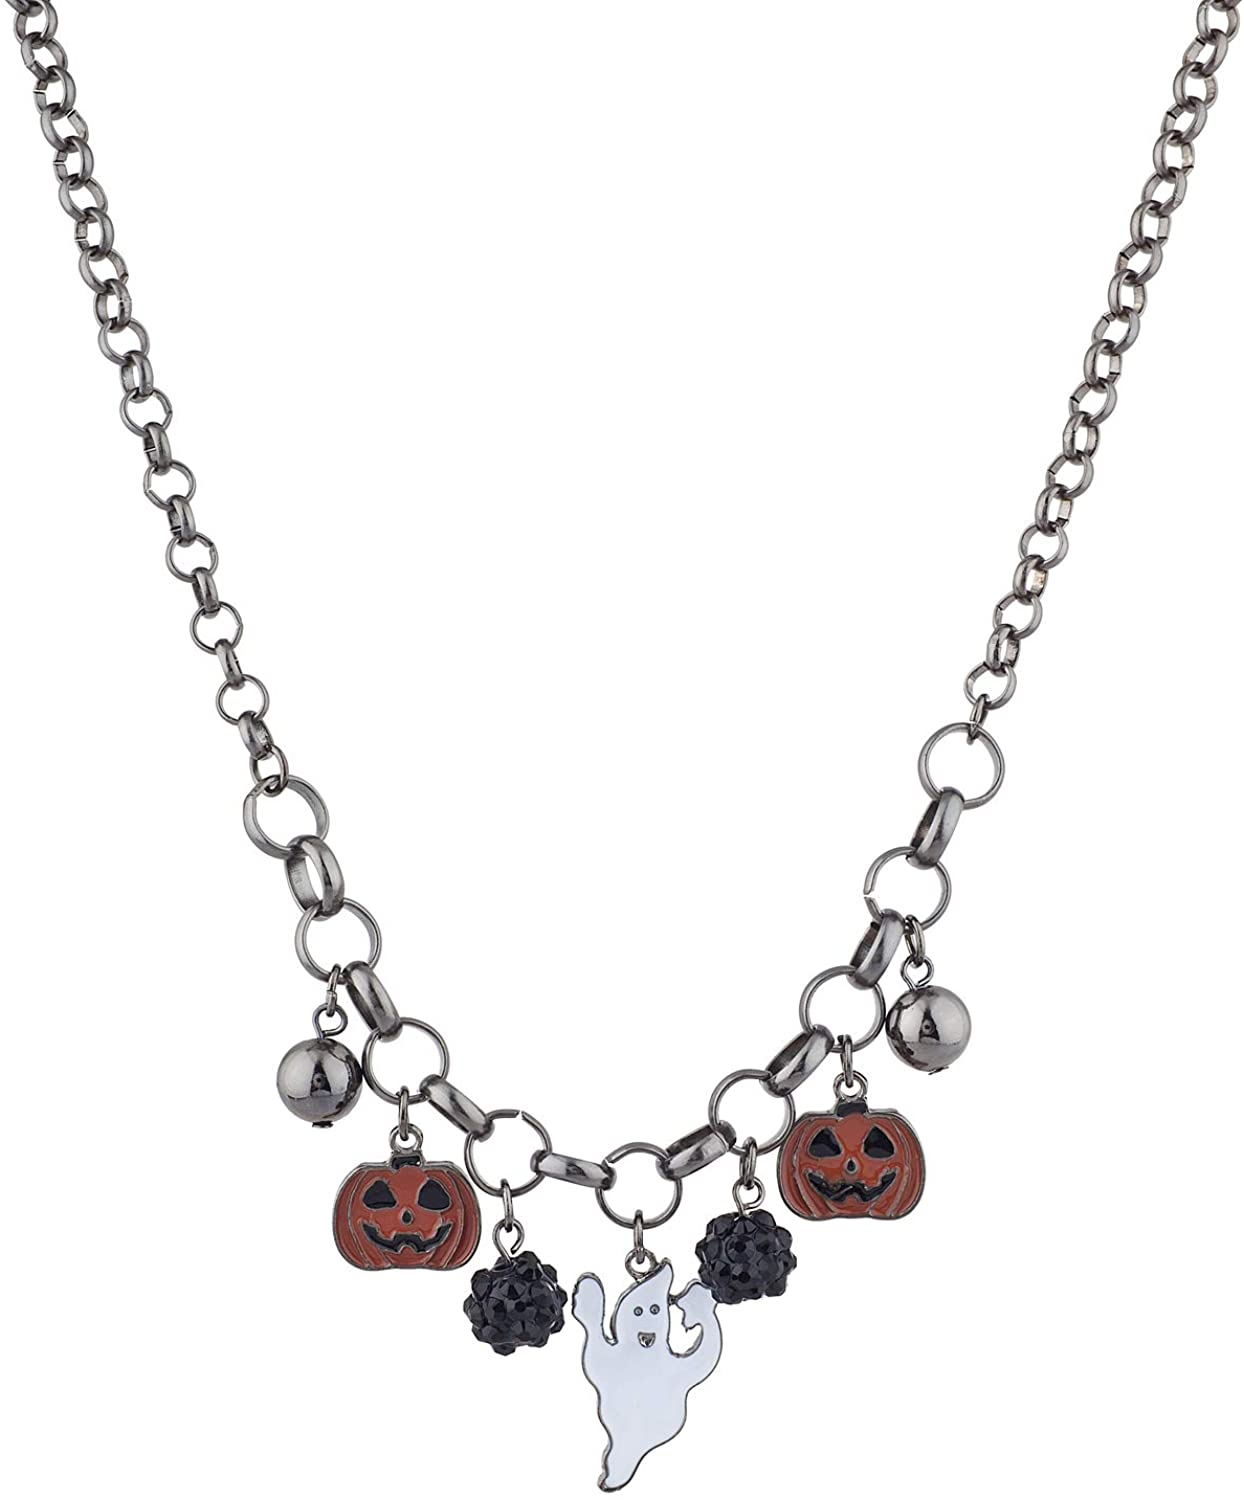 Lux Accessories Halloween Black Ghost Pumpkin Charms Collar Chain Necklace